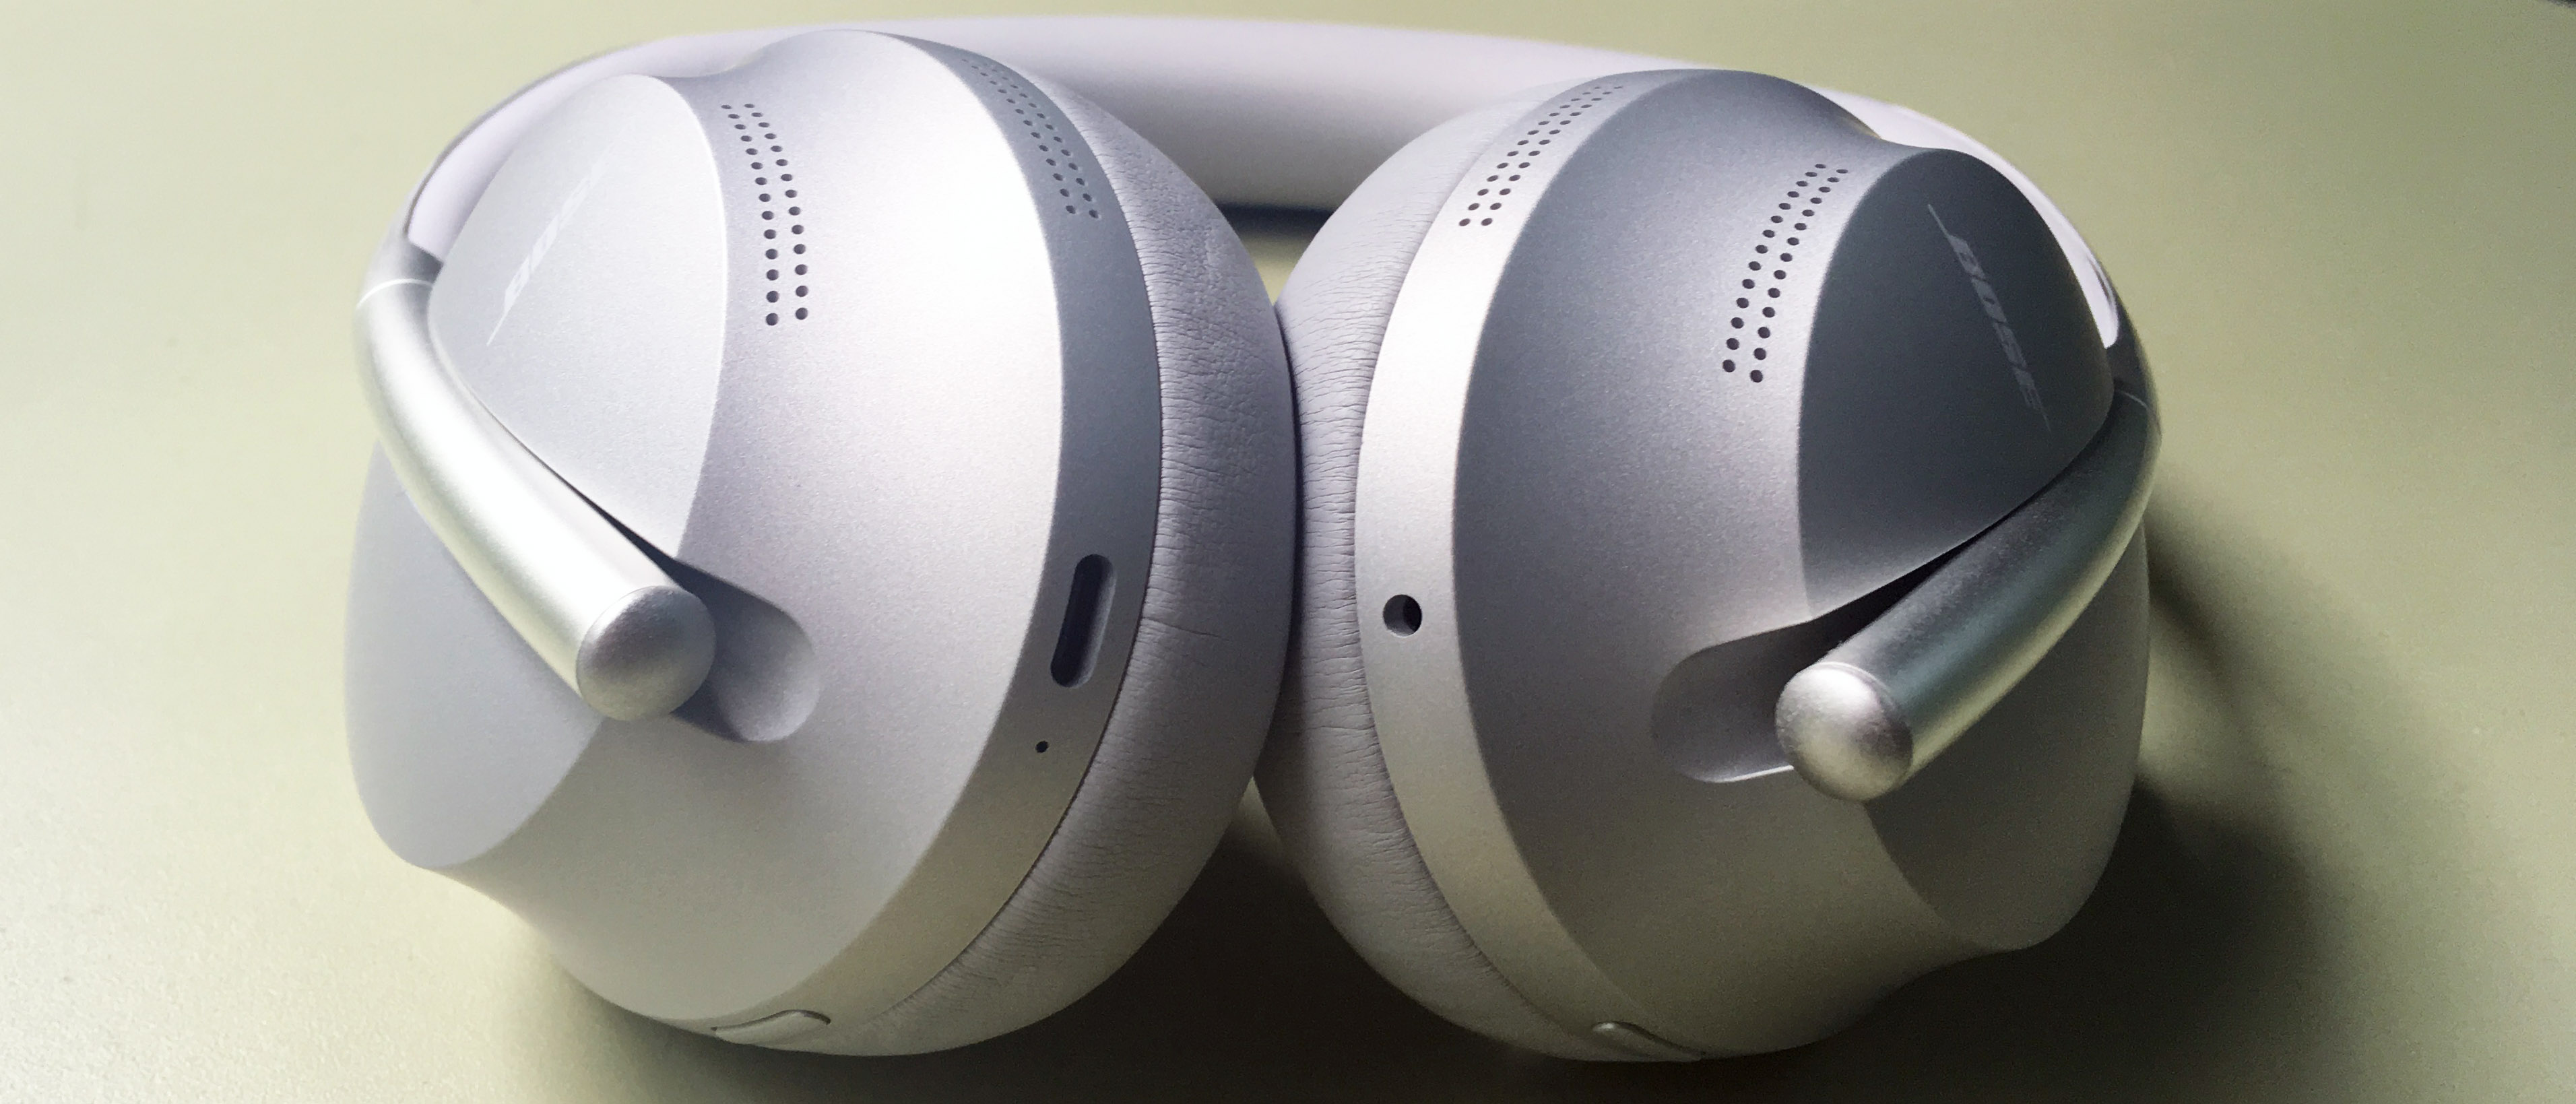 Hands on: Bose Noise Cancelling Headphones 700 review | TechRadar